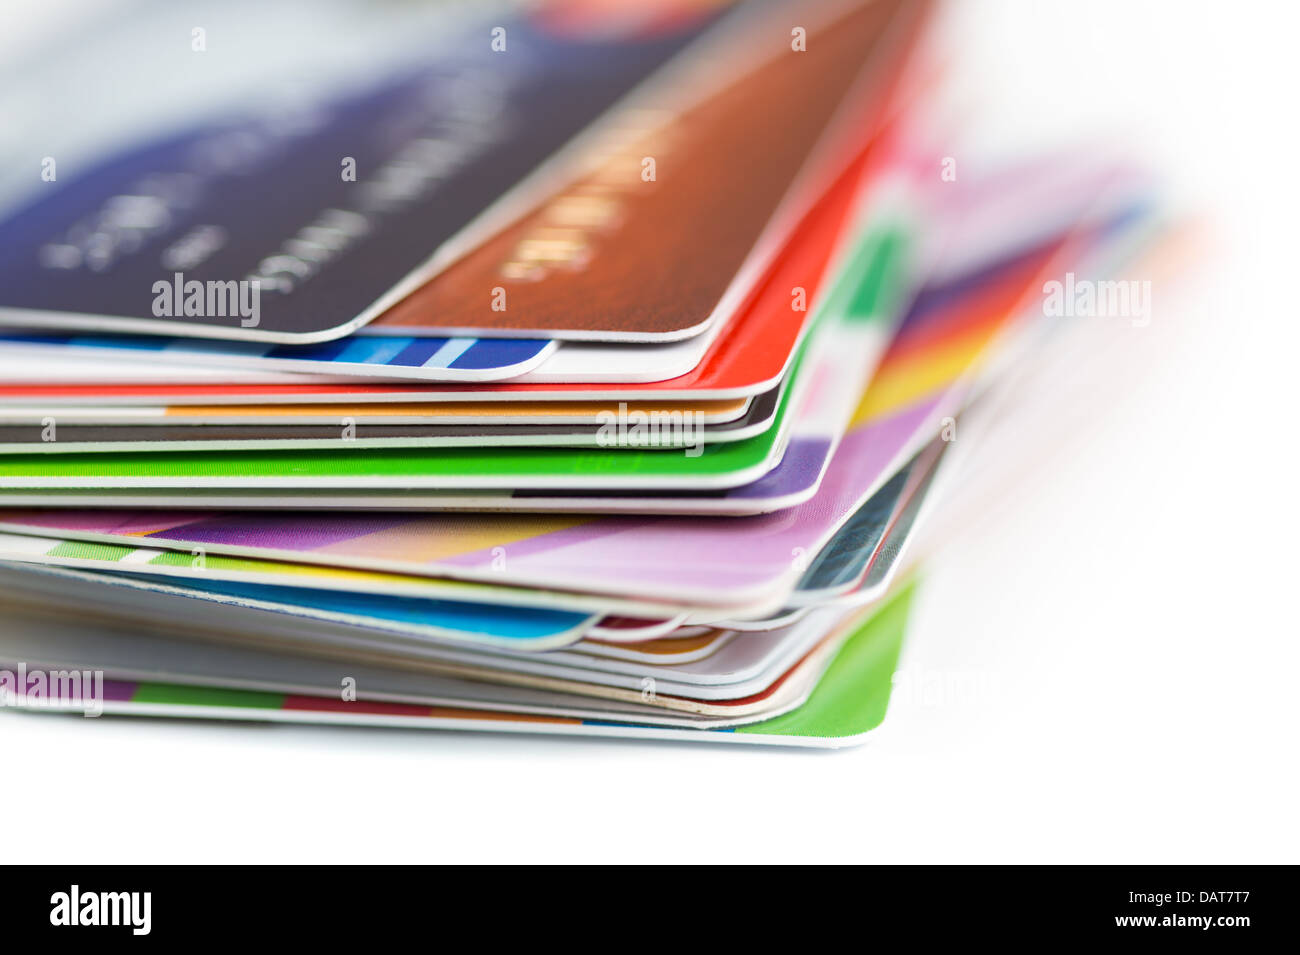 credit cards stack close up - Stock Image